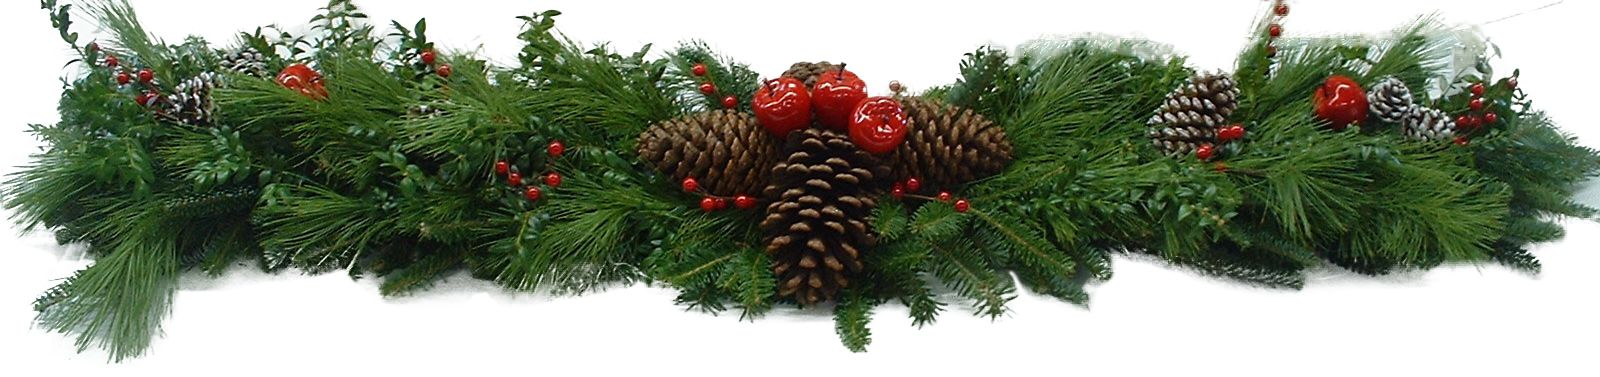 Small Christmas Bough With Berries Decoration